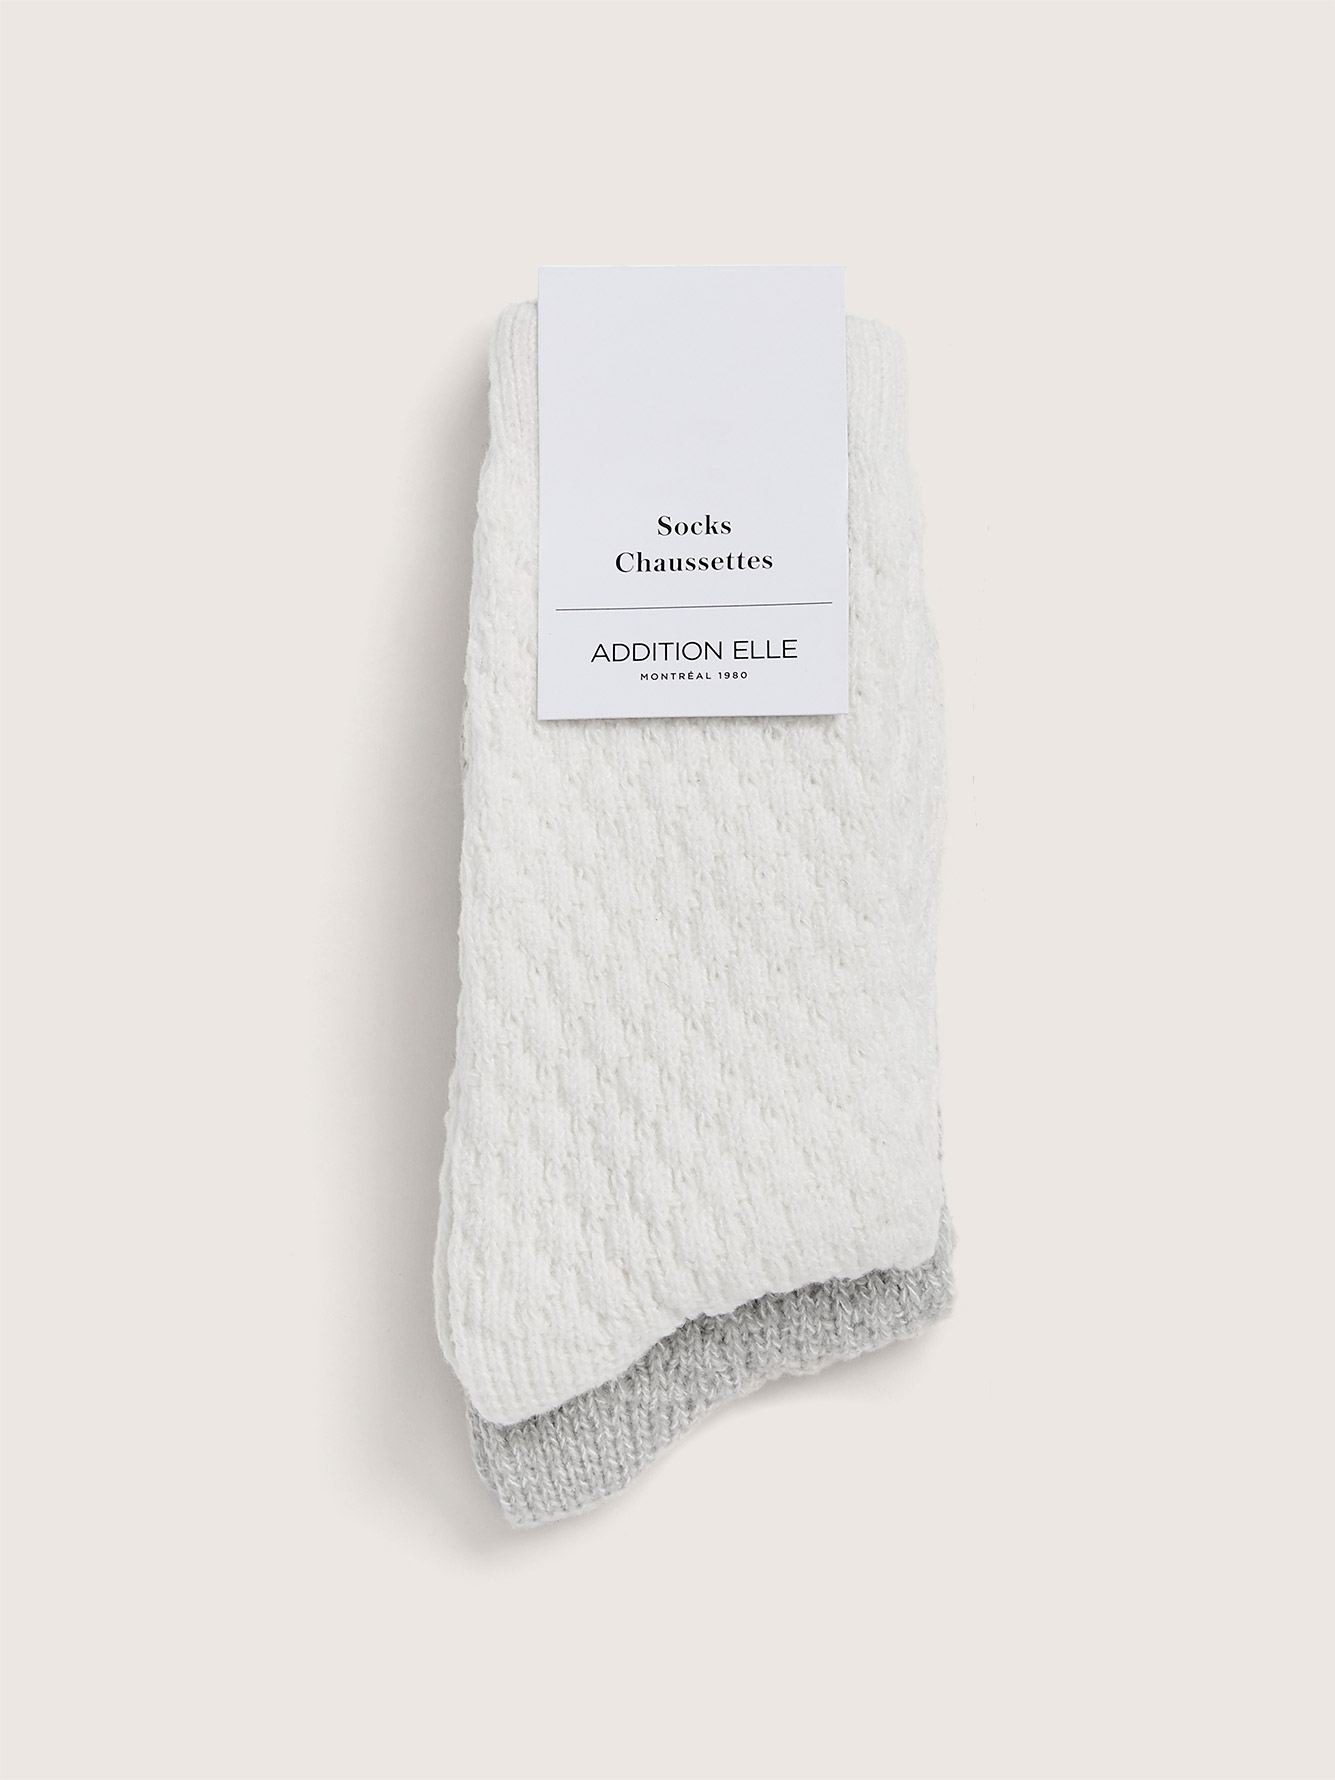 Roll Up Sleeping Socks, Pack of 2 - Addition Elle